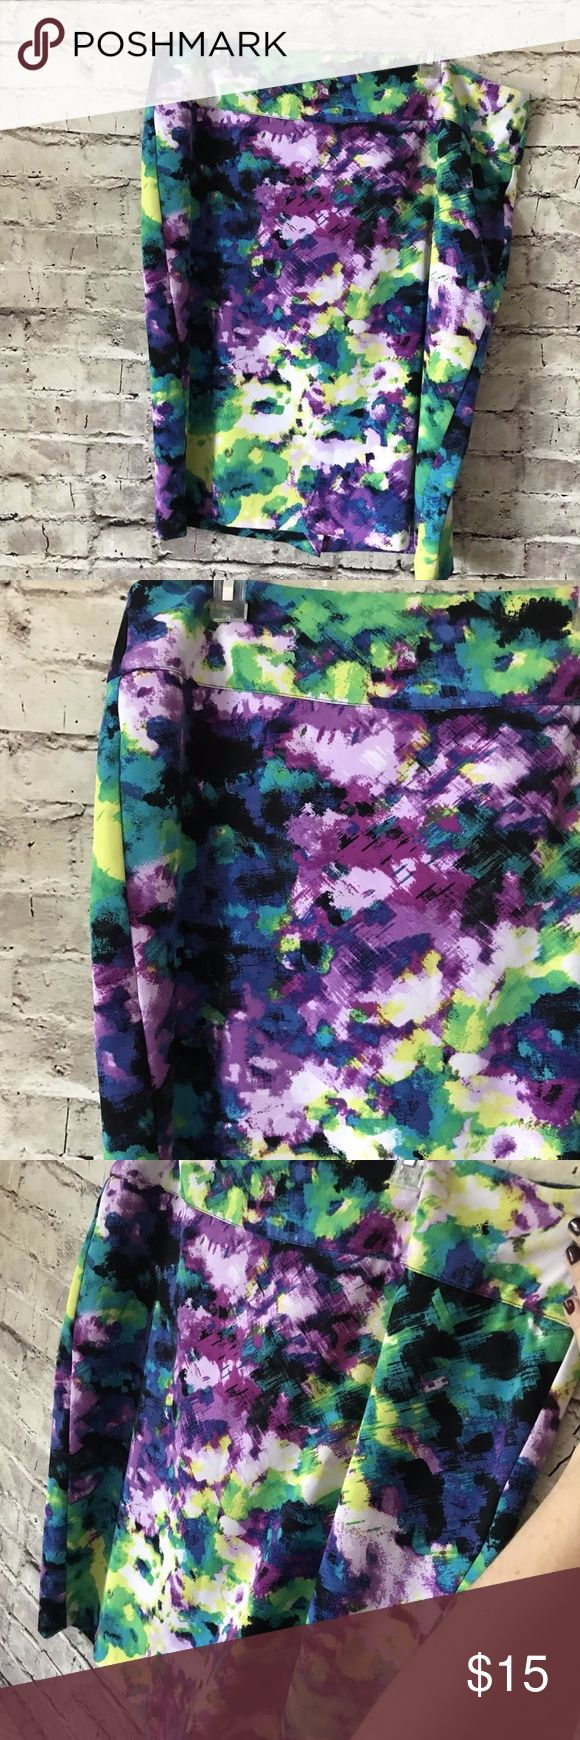 Lane Bryant  Floral  SZ 18 Purple Pencil Skirt Beautiful multi-colored pencil skirt in great used condition. No major signs of wear. No fading, rips, or pilling. 24 inches long, 19.5 inch waistband. Back zipper, no pockets. Lane Bryant Skirts Pencil